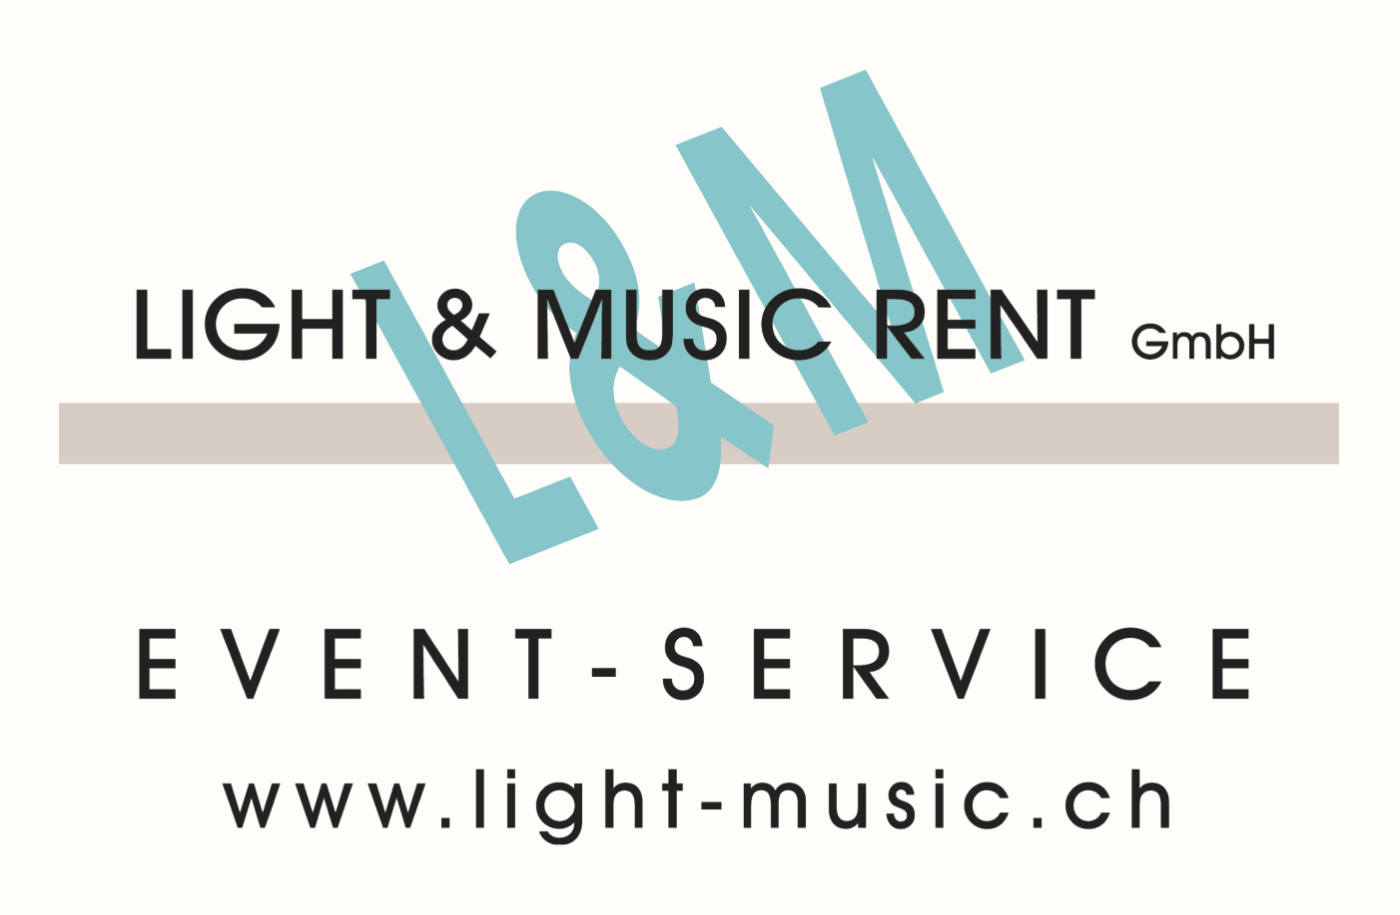 LIGHT + MUSIC RENT GmbH